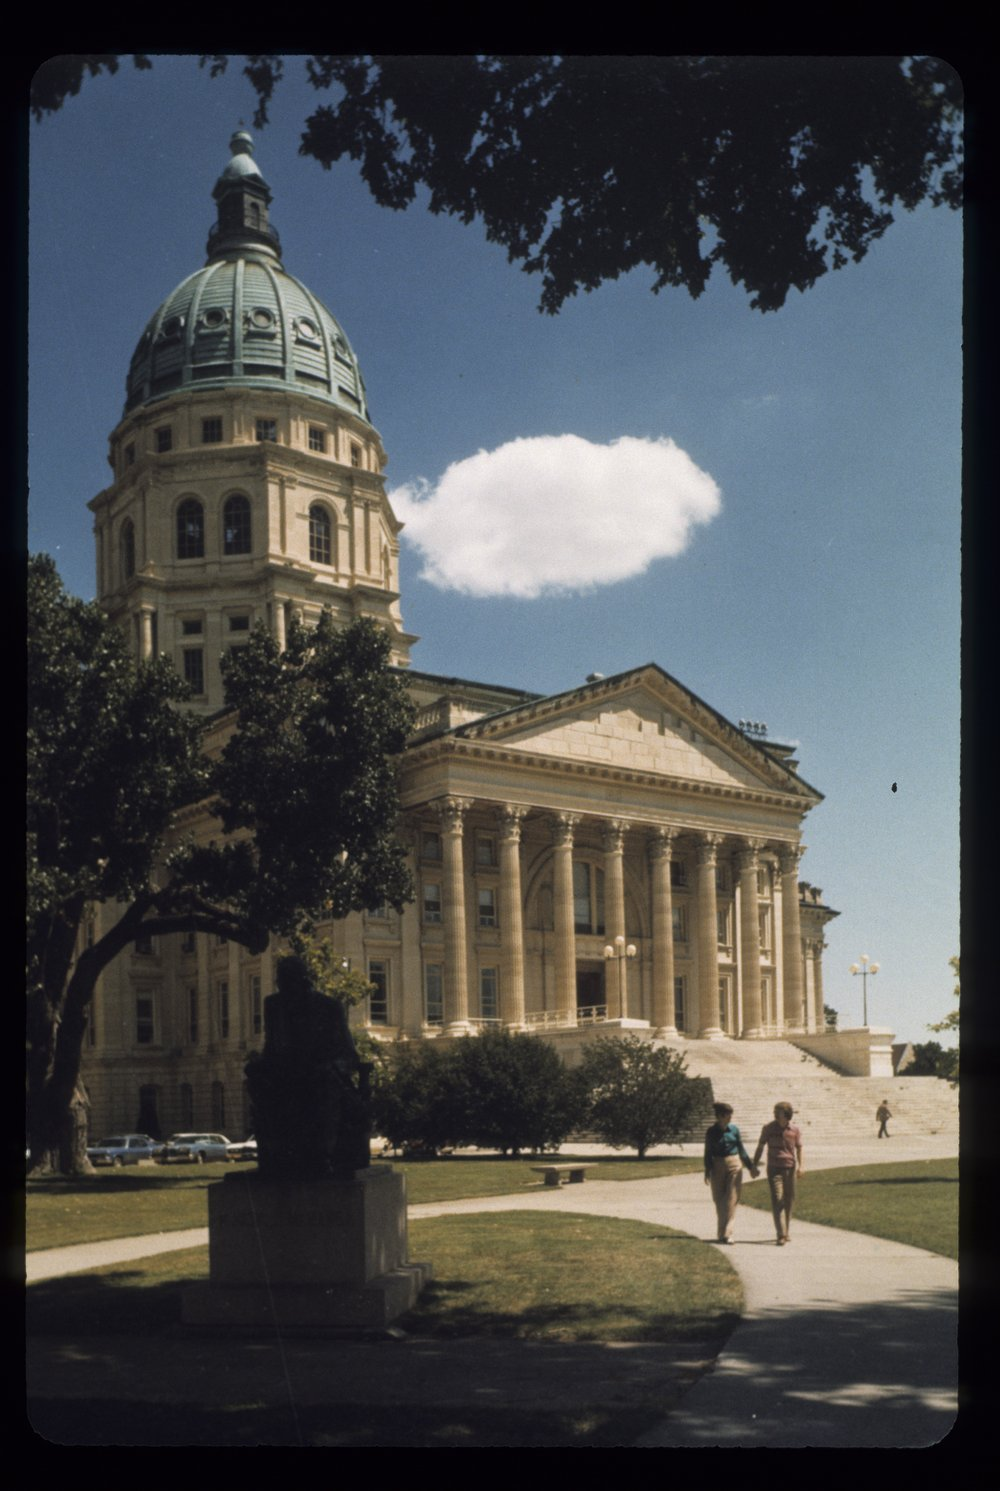 South wing of the Kansas capitol in Topeka, Kansas